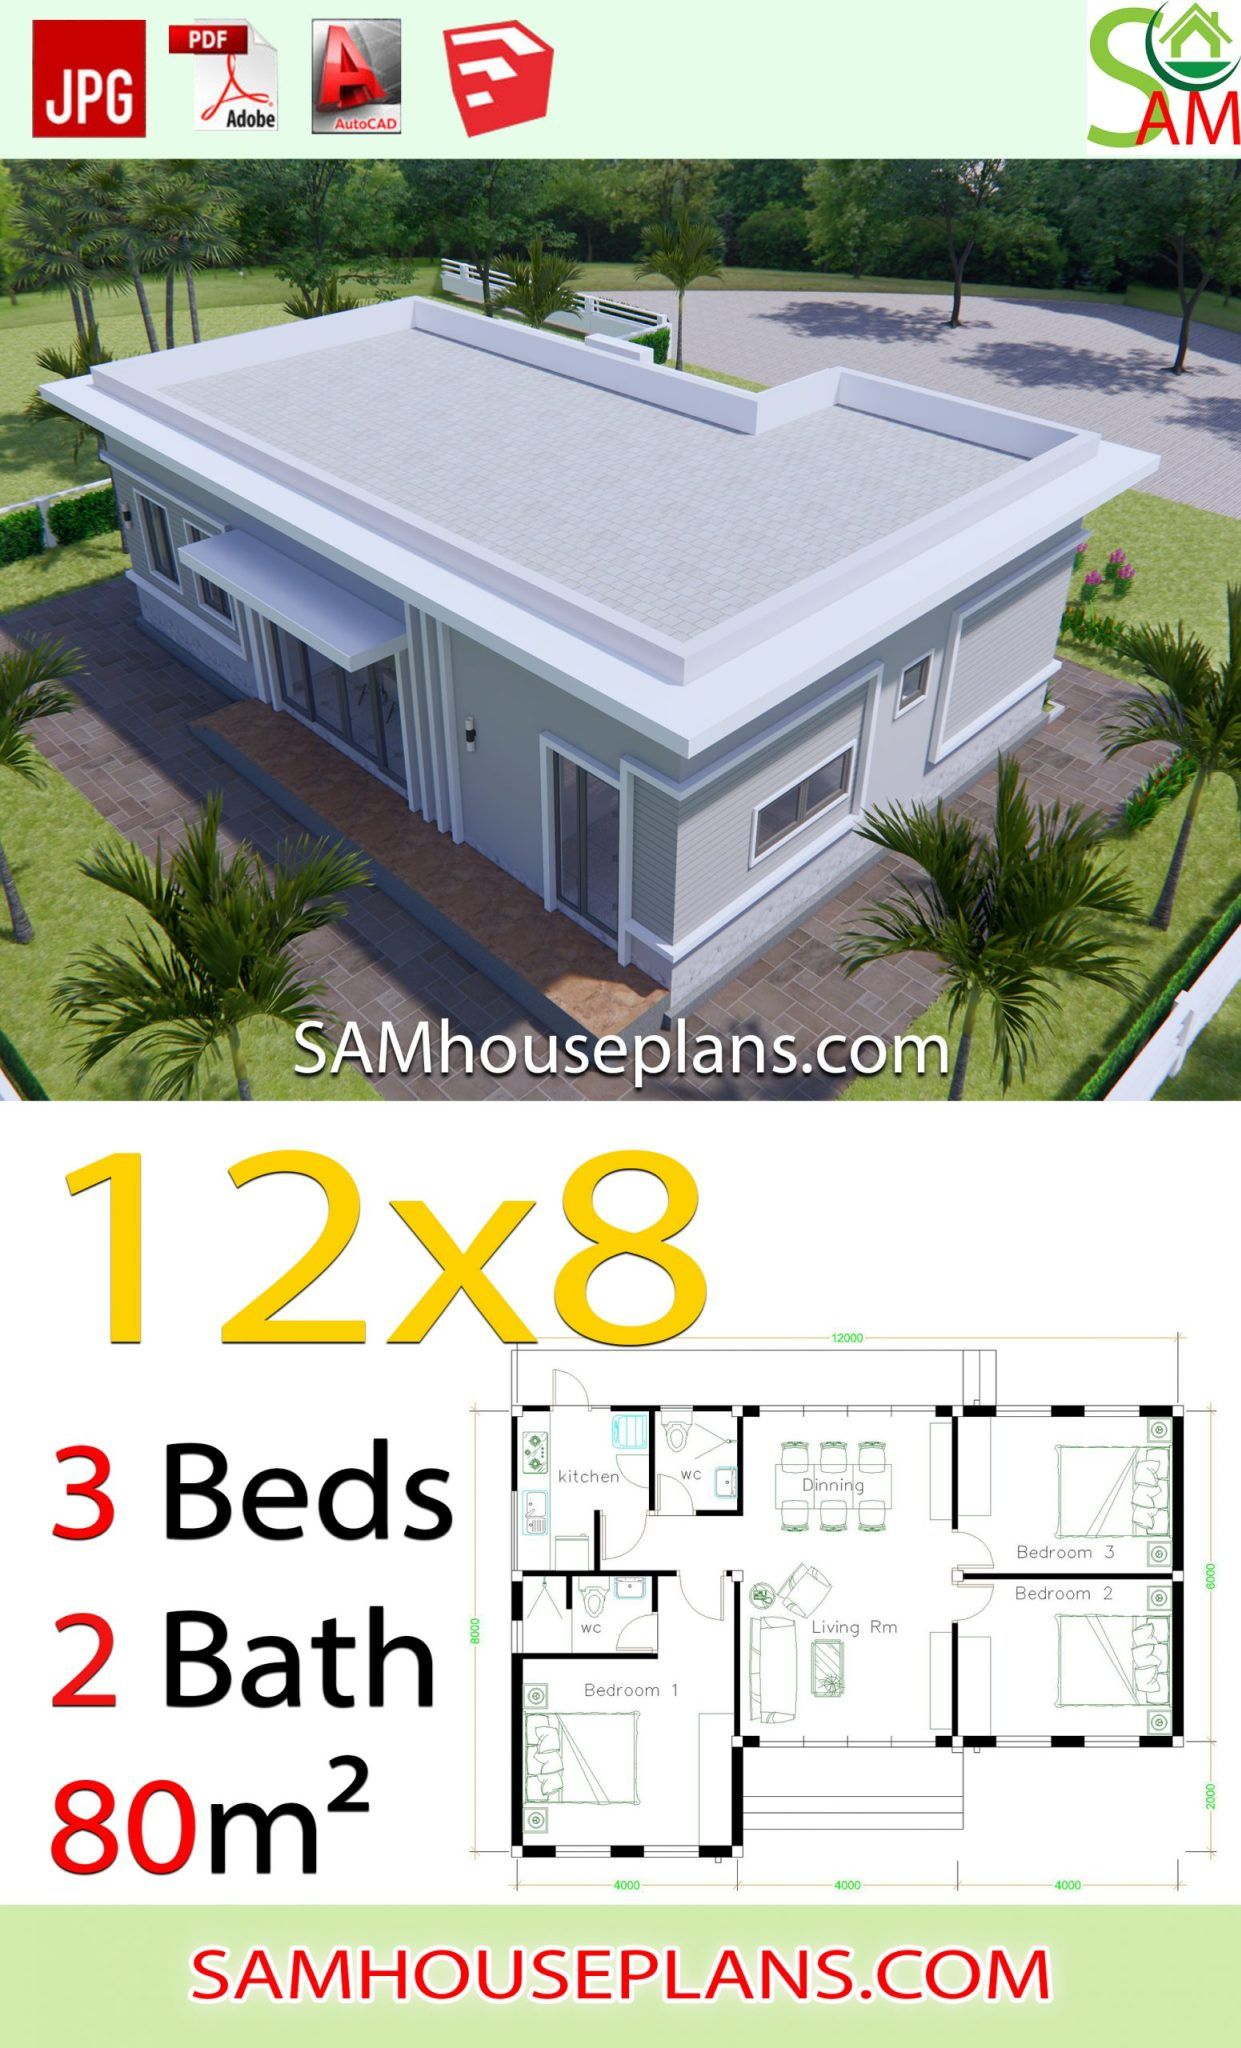 House Plans 12x8 With 3 Bedrooms Terrace Roof Sam House Plans Building Plans House Small House Design Plans Affordable House Plans